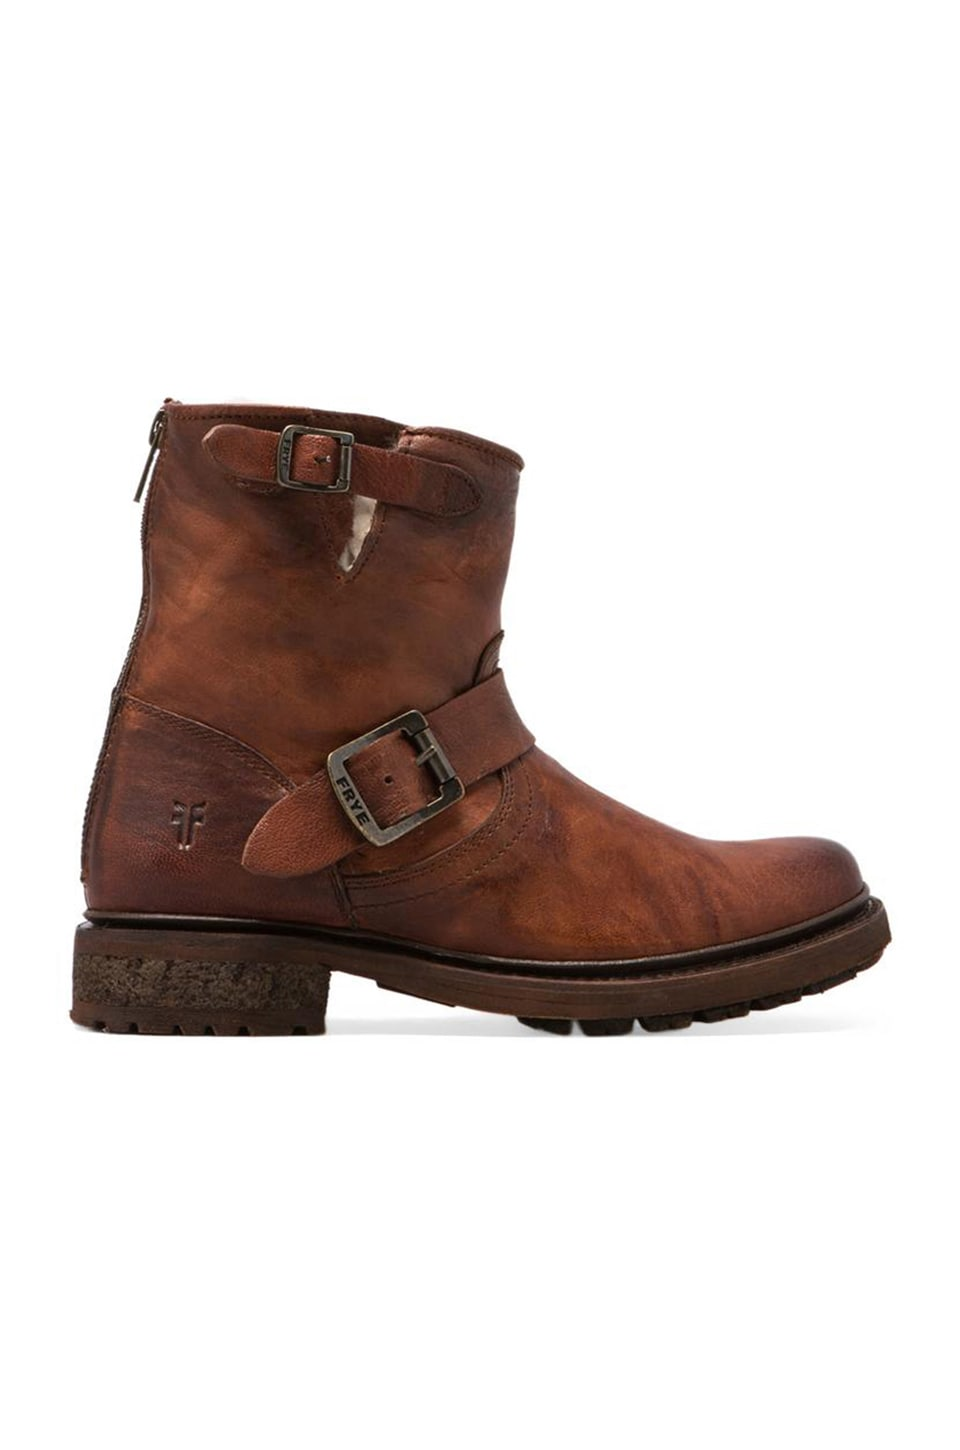 Frye Valerie 6 Motorcycle Lamb Shearling Lined Boot in Cognac